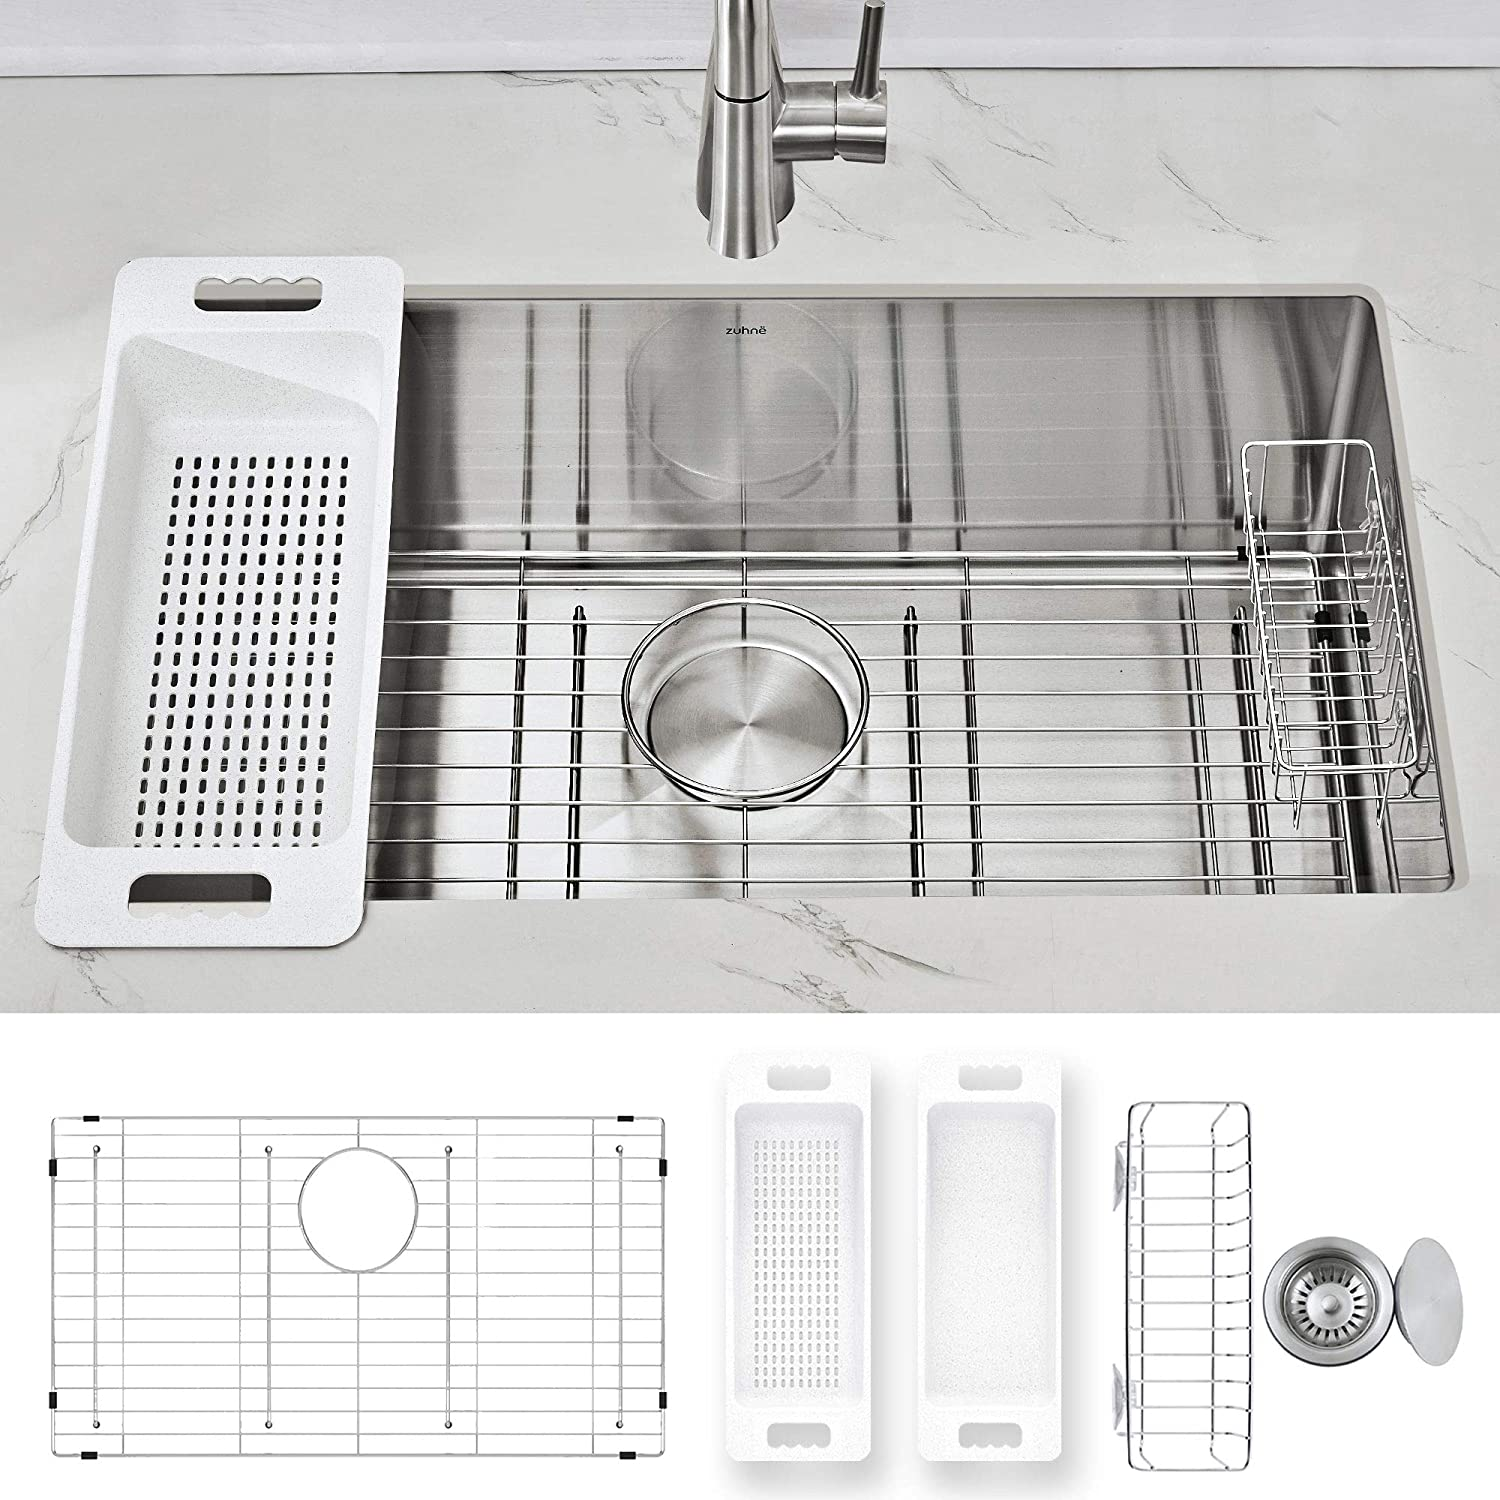 Best Undermount Kitchen Sinks for Granite Countertops | Reviews & Buying Guide Updated April-2021